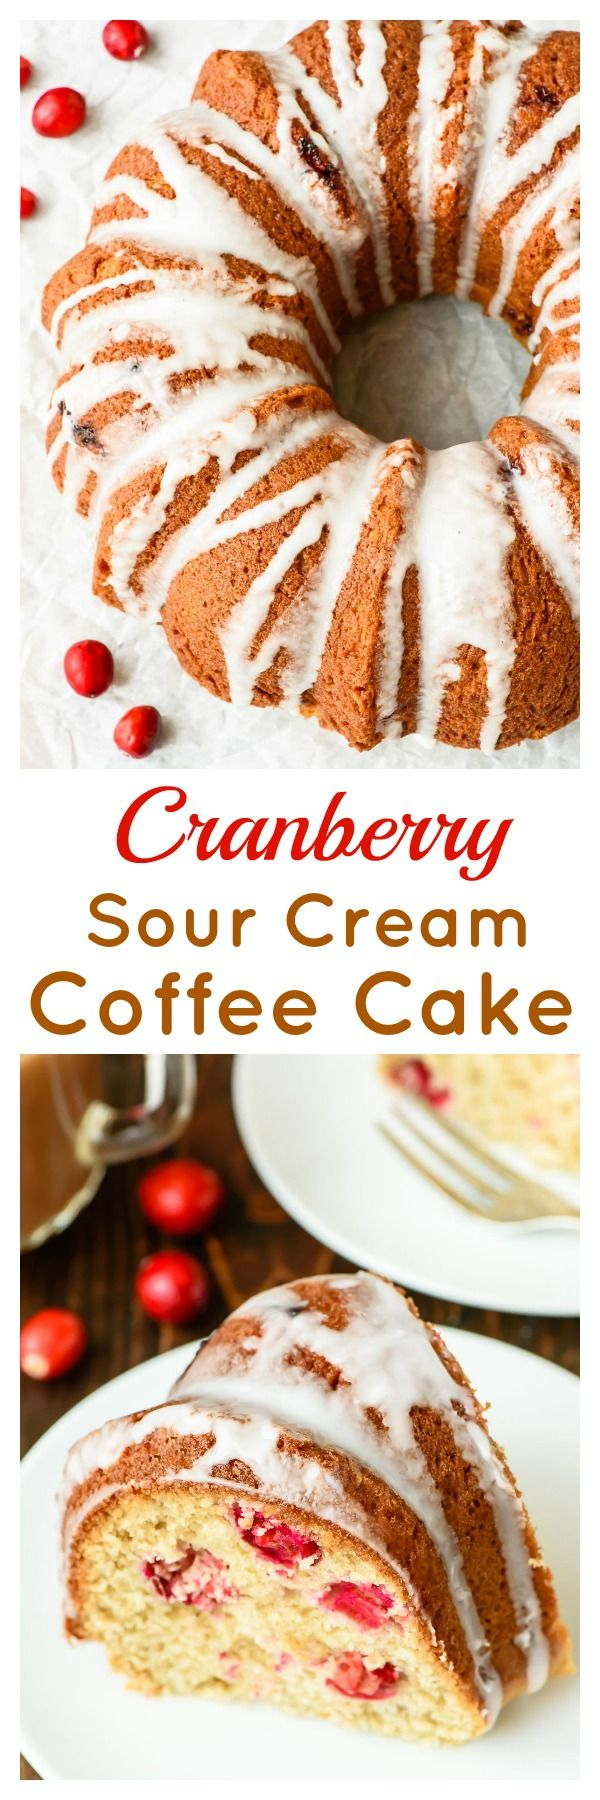 Cranberry Sour Cream Coffee Cake Coffee Cake Sour Cream Coffee Cake Breakfast Coffee Cake